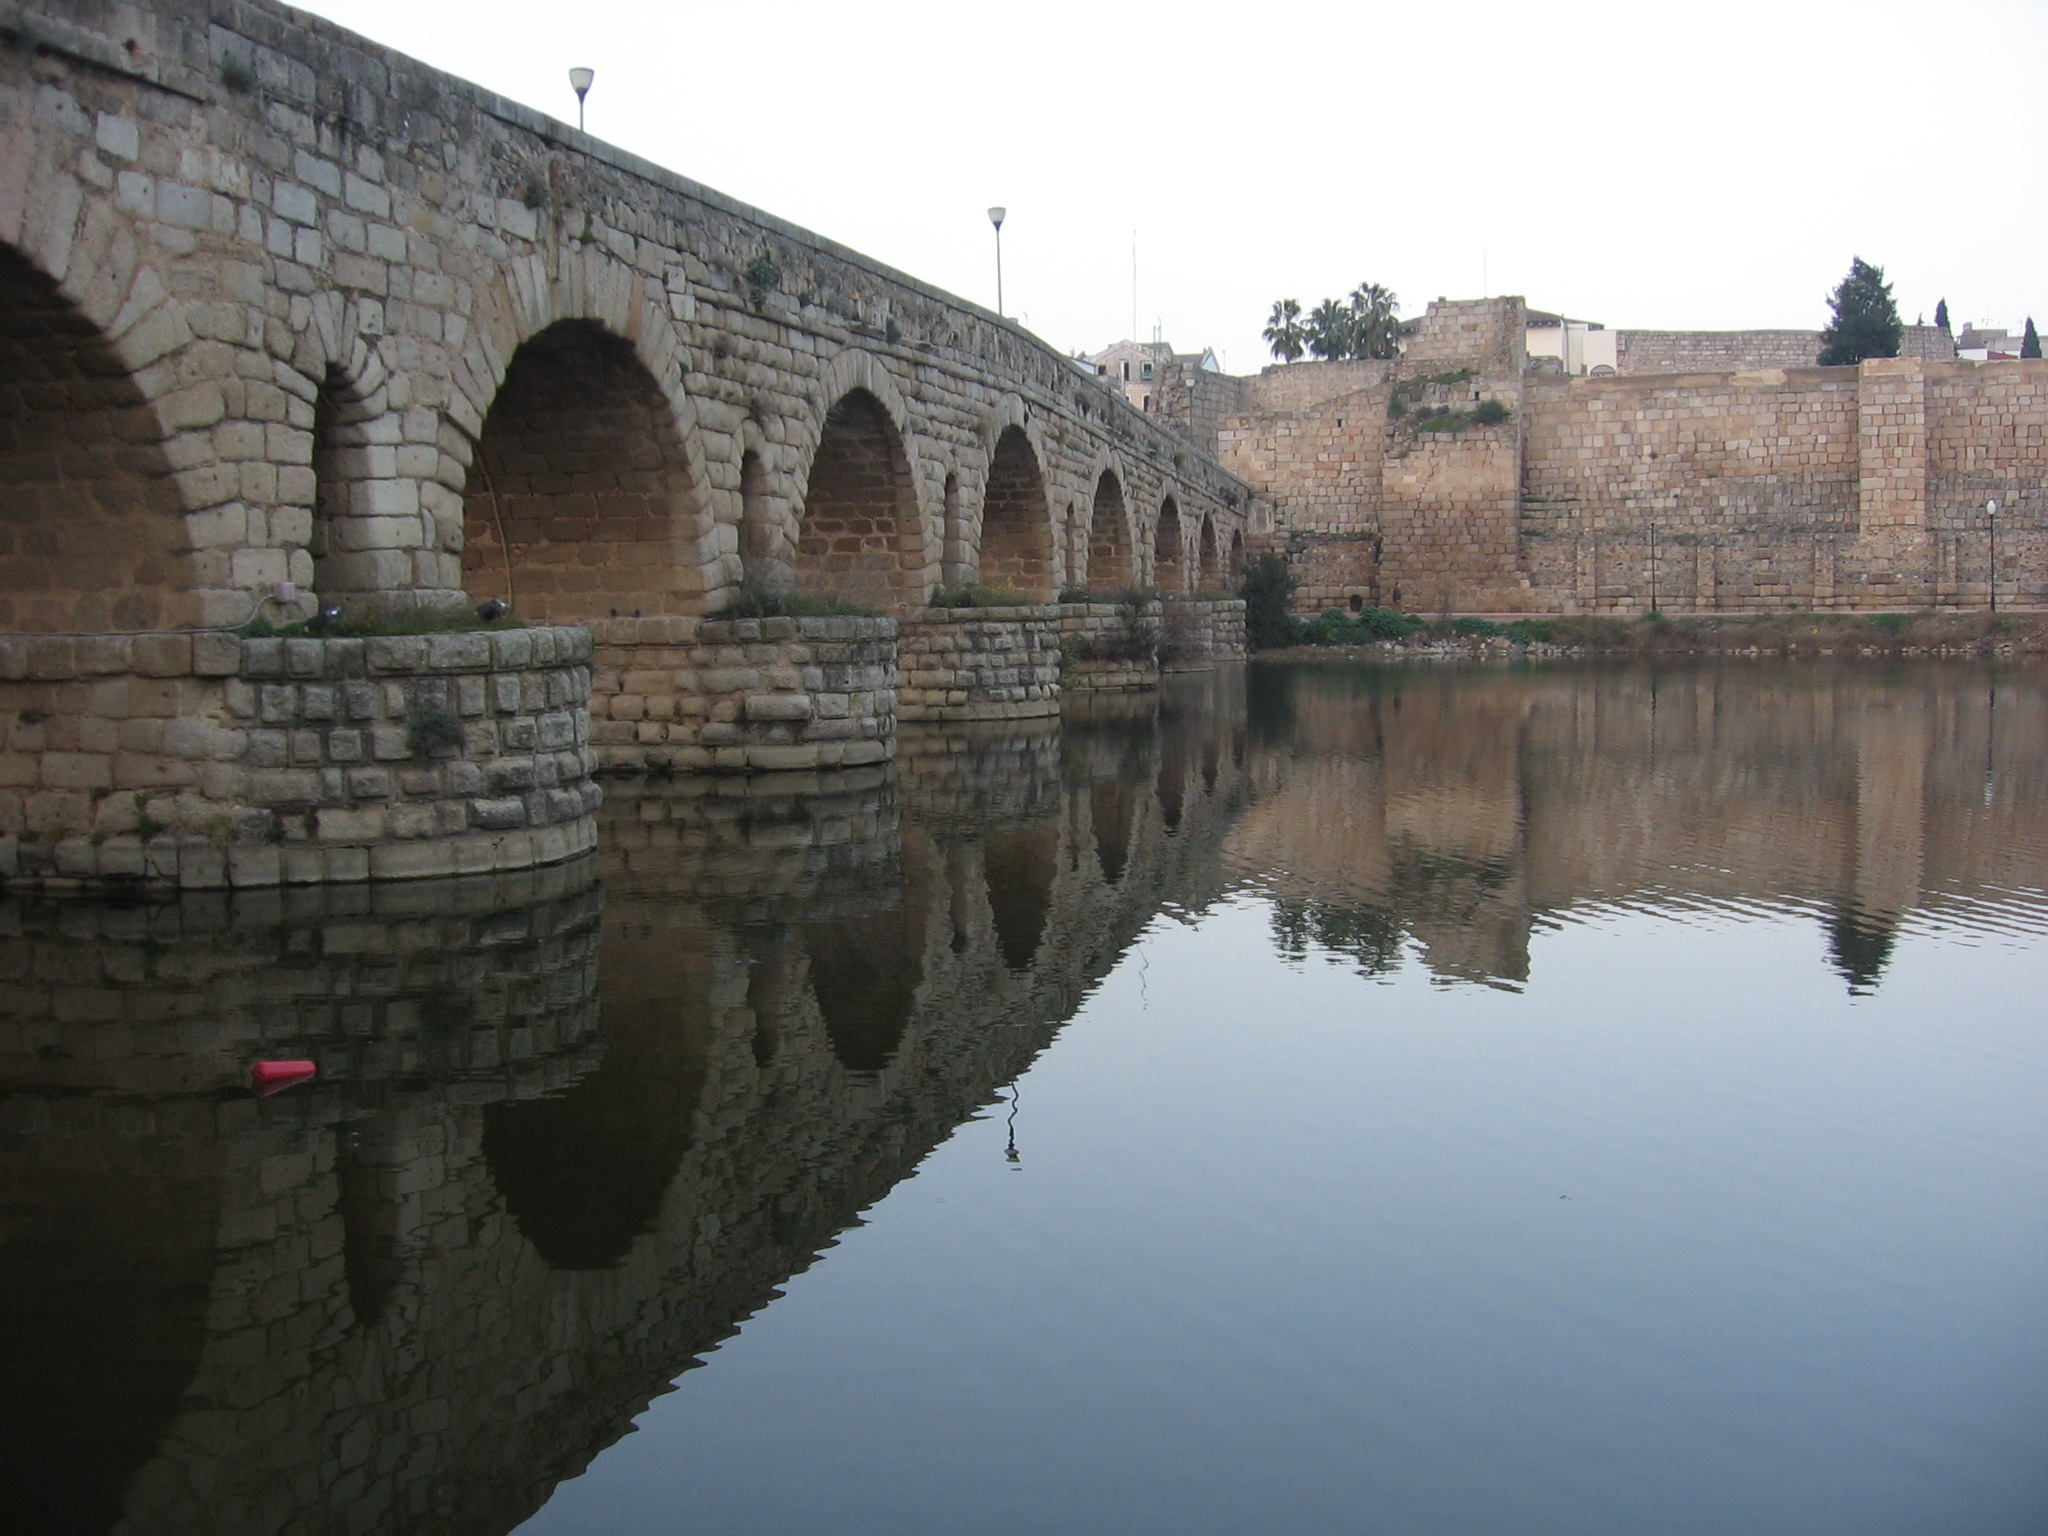 File:Puente Romano Merida.jpg - Wikimedia Commons